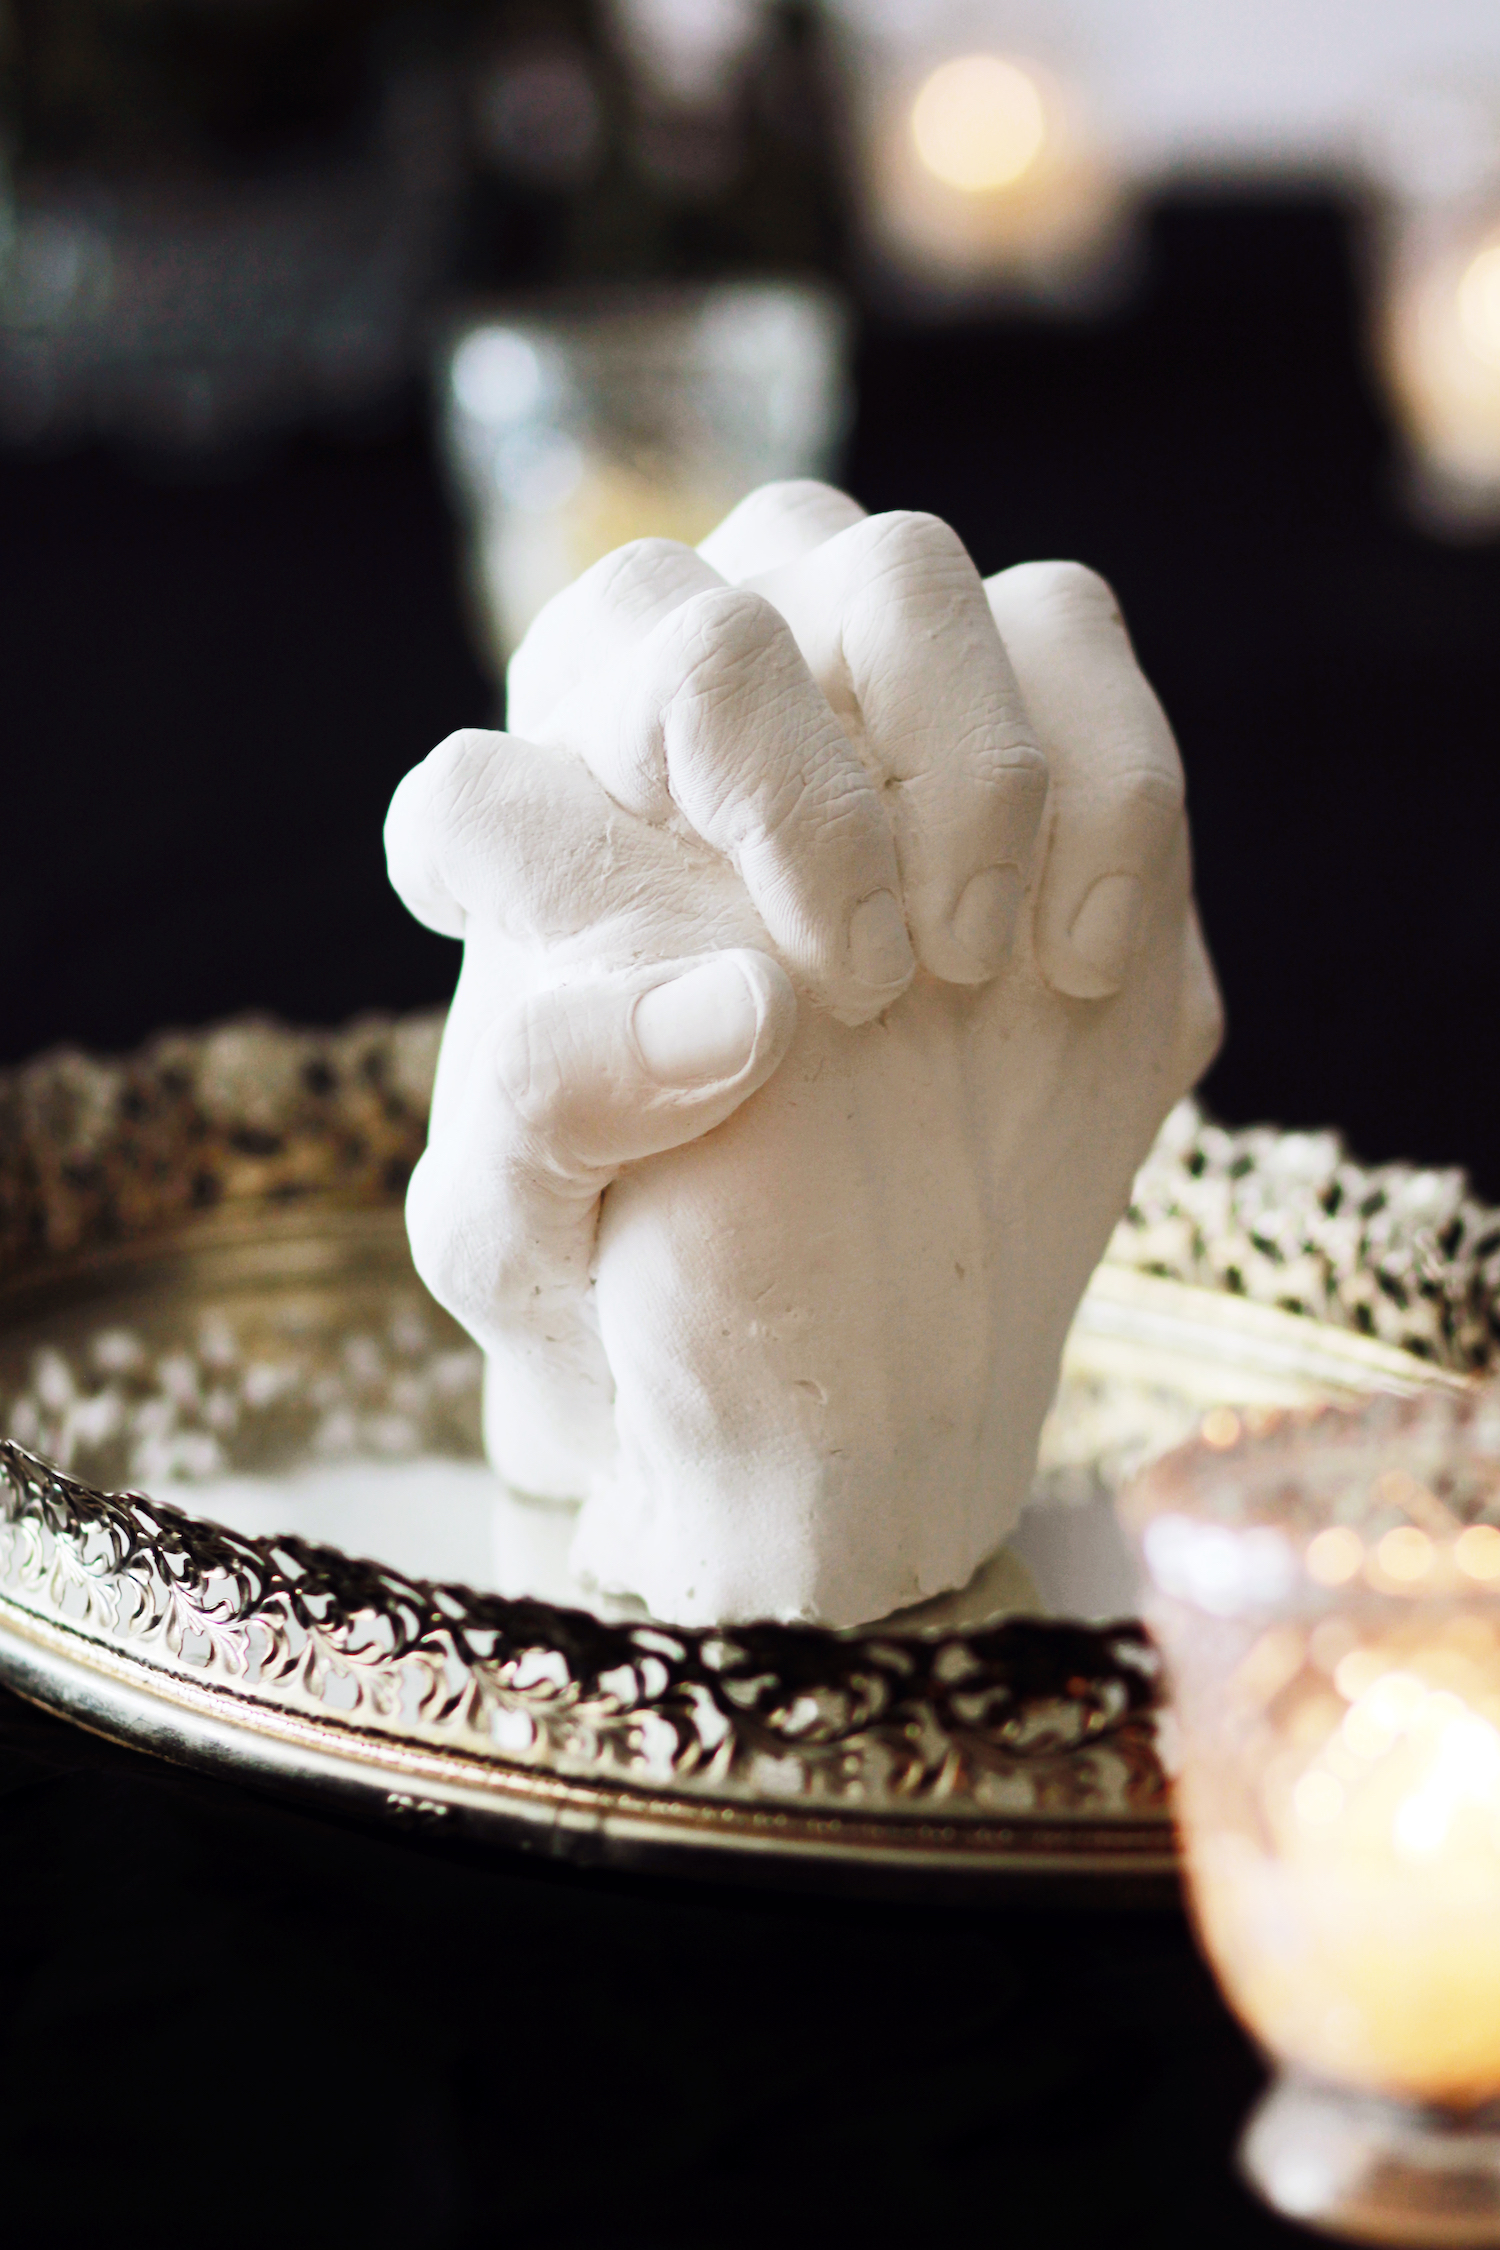 Copy of hand-mold.jpg